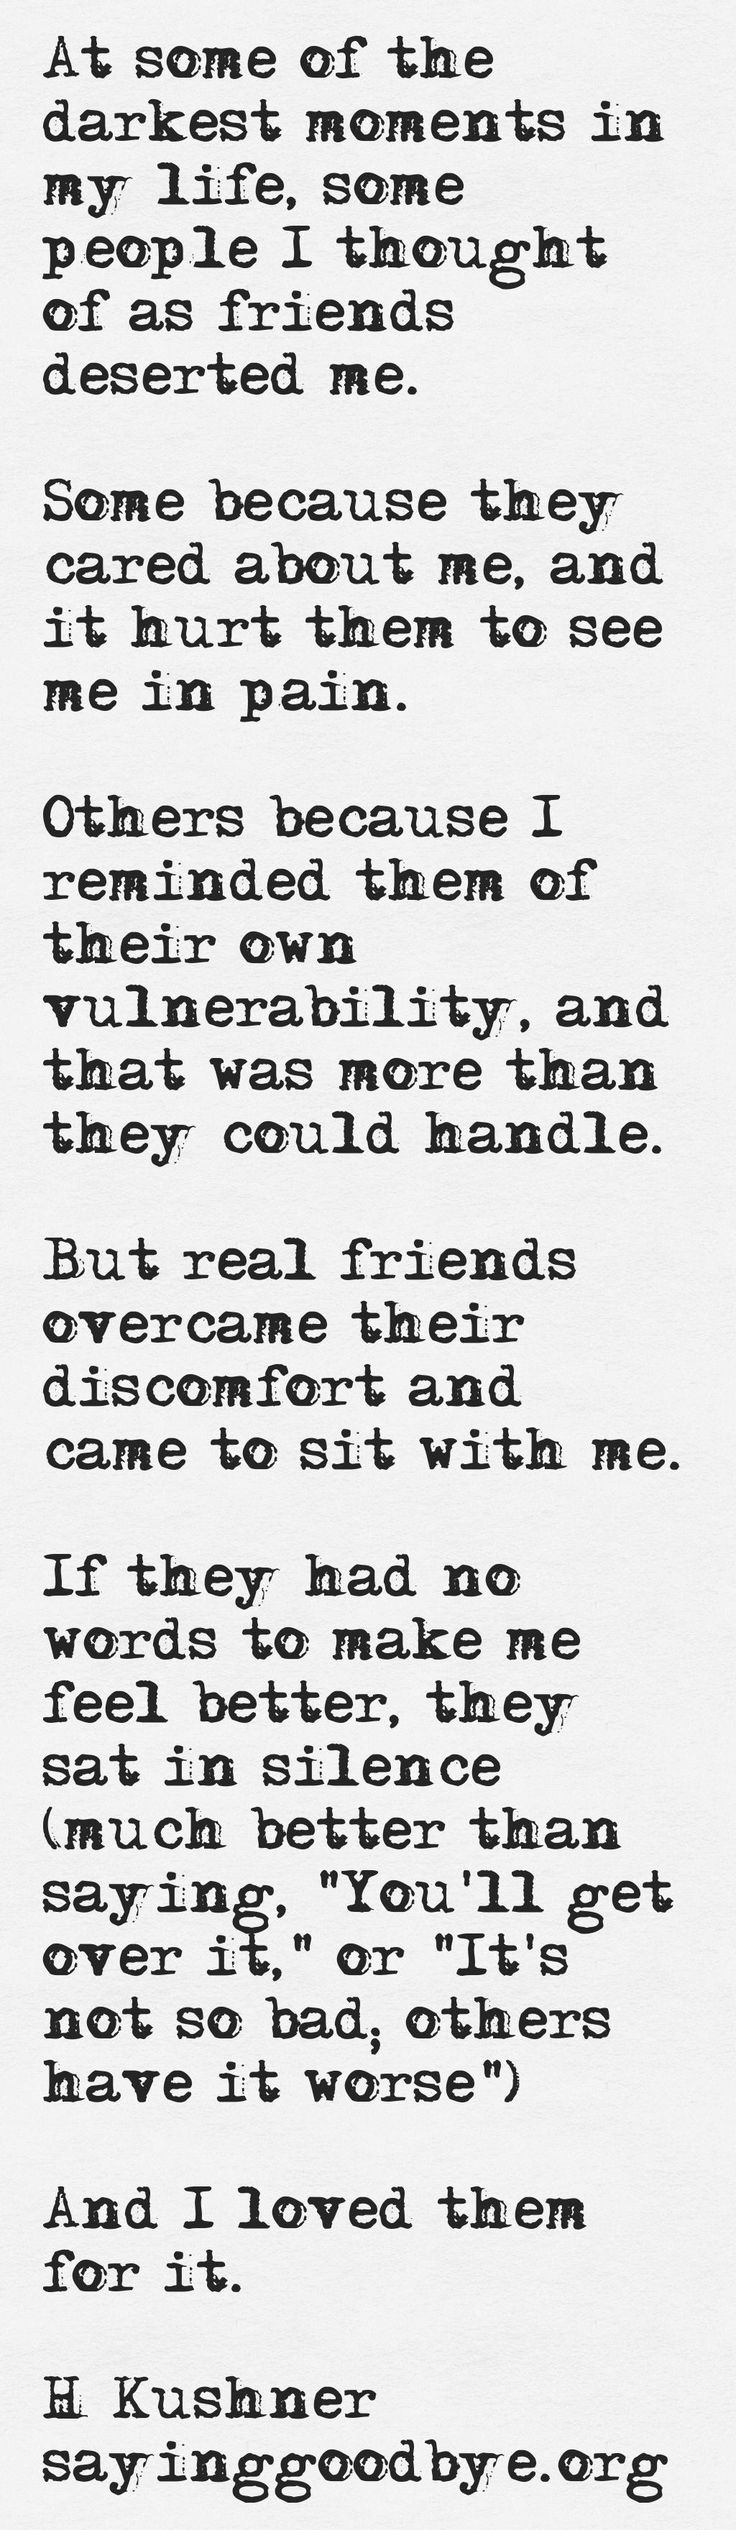 best ideas about true friendships true 17 best ideas about true friendships true friendship quotes loyalty friendship and true friend quotes